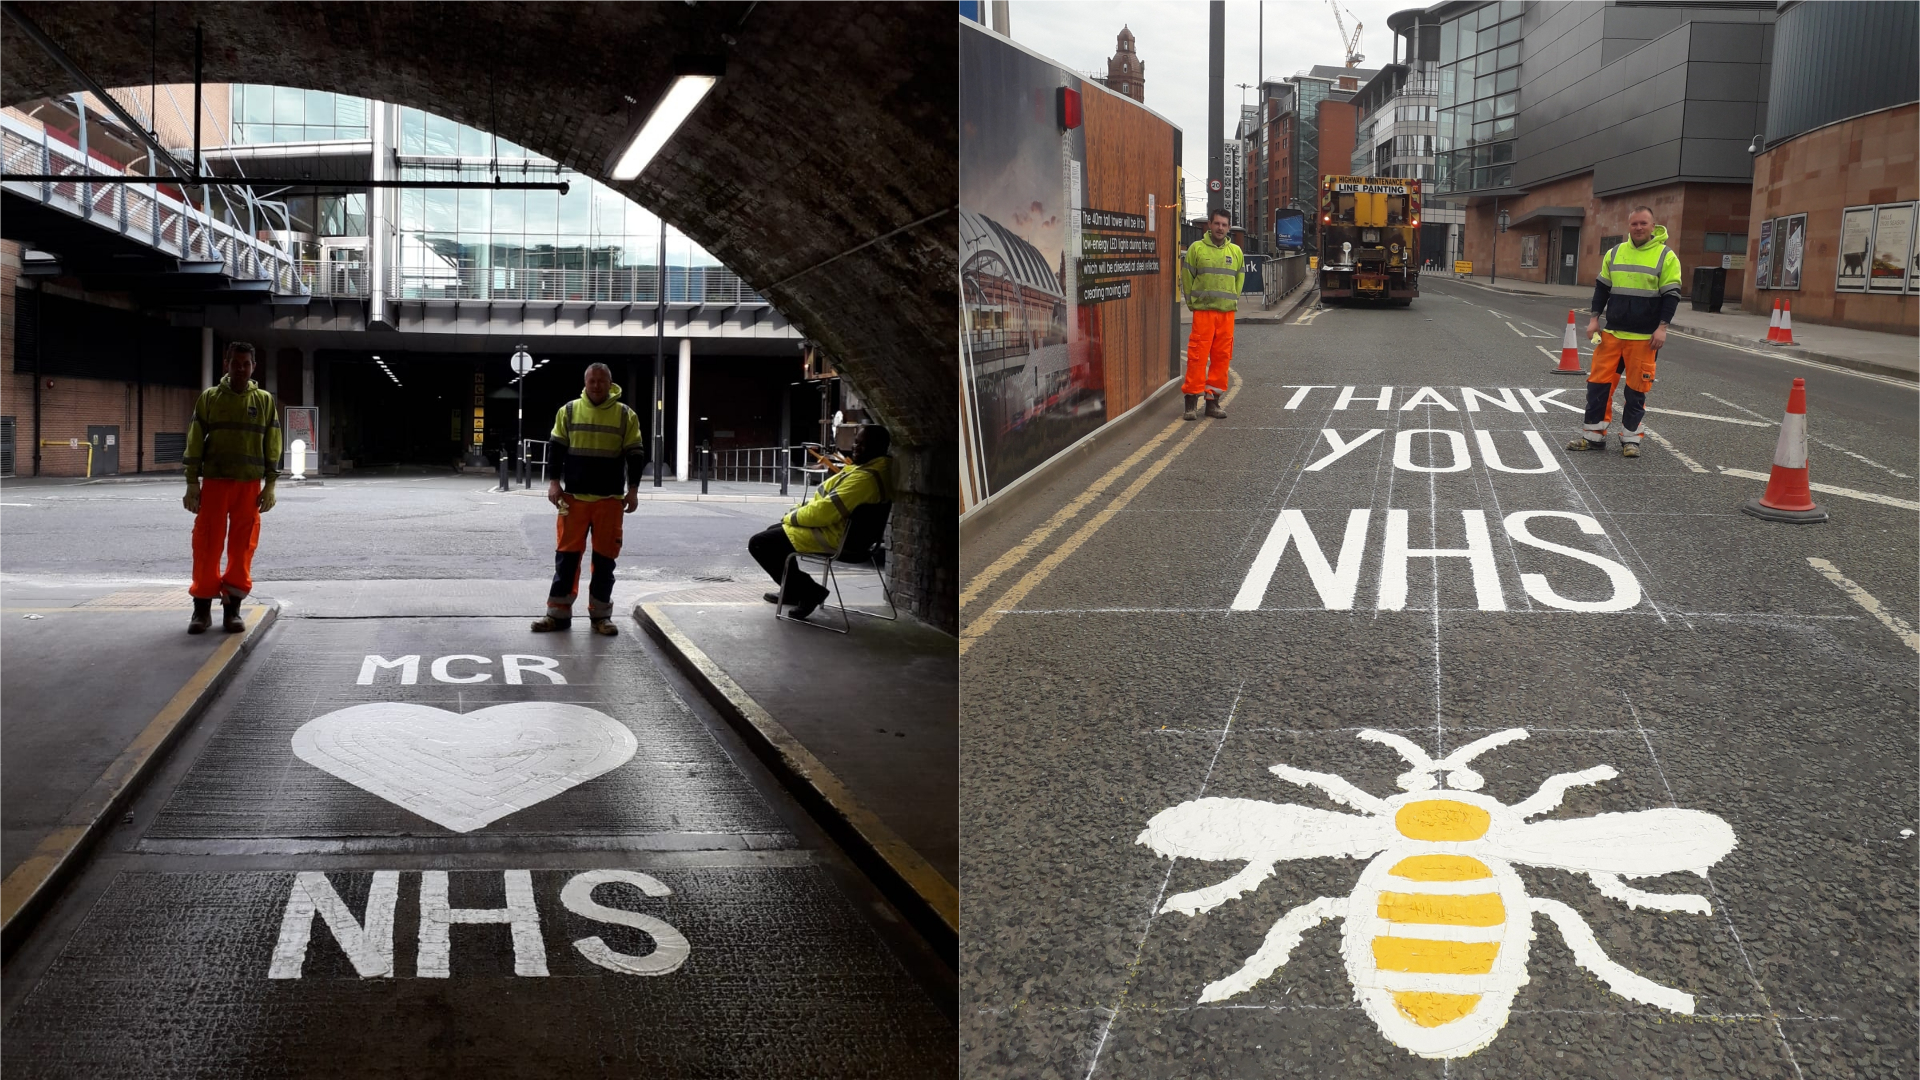 Road markings for NHS staff